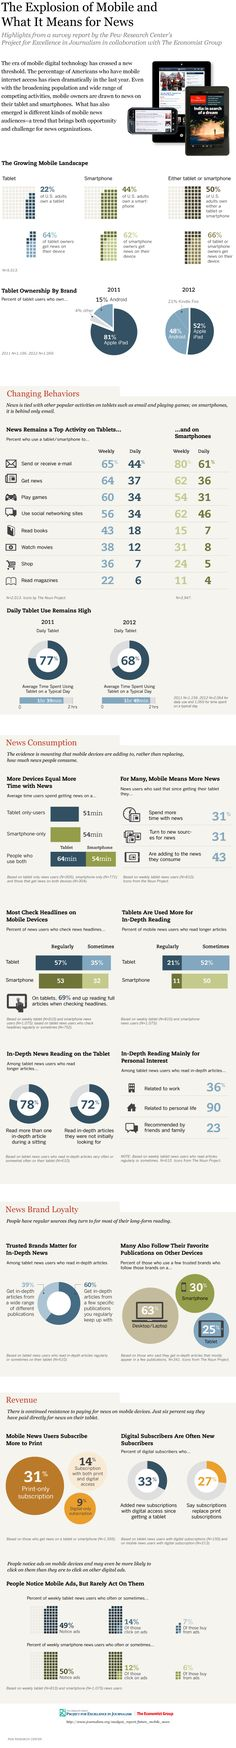 Great information about mobile device news usage